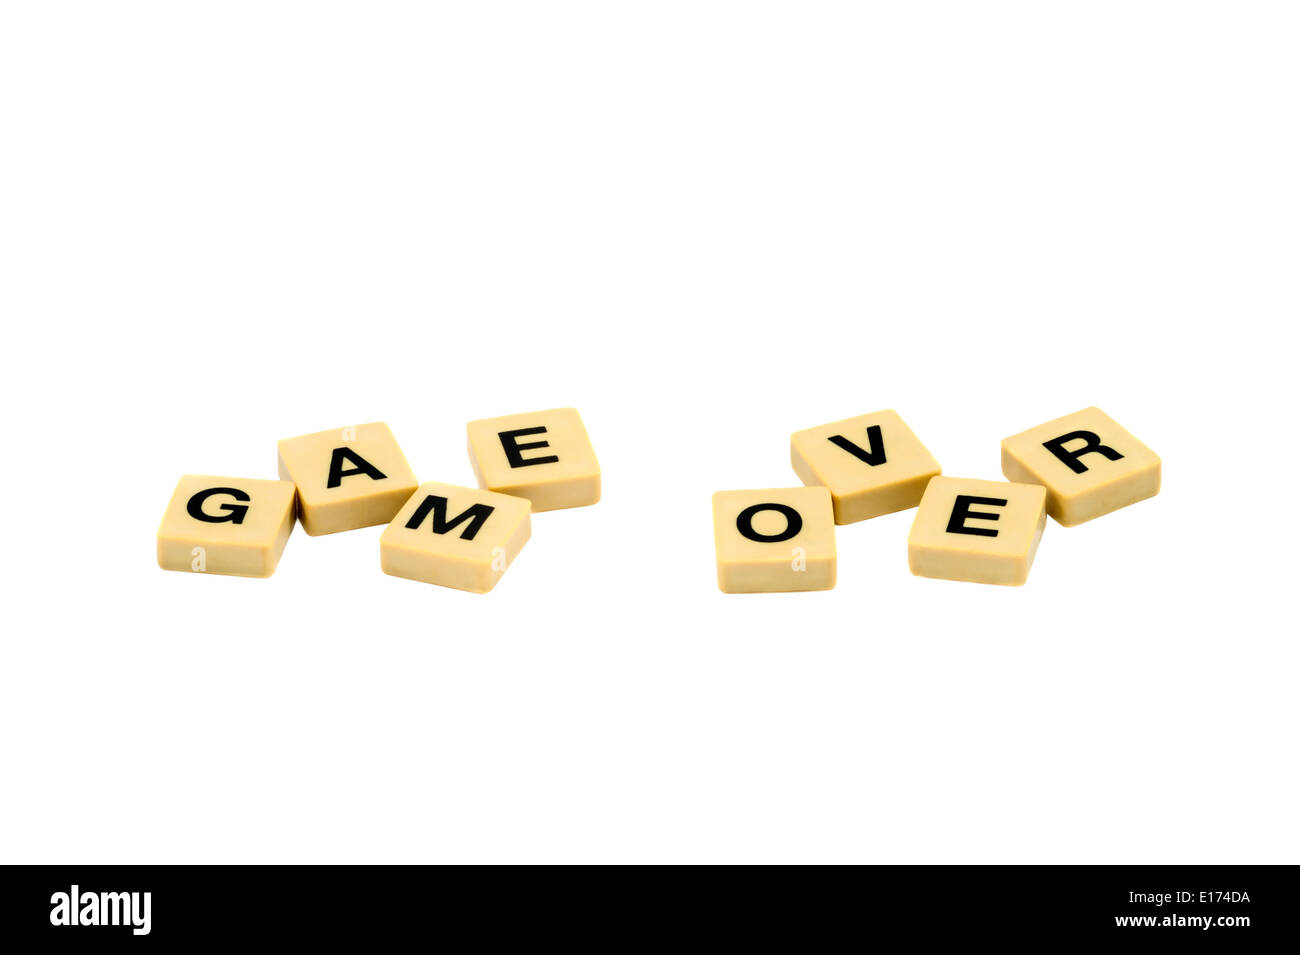 game over bankruptcy scrabble text Isolated on white background - Stock Image